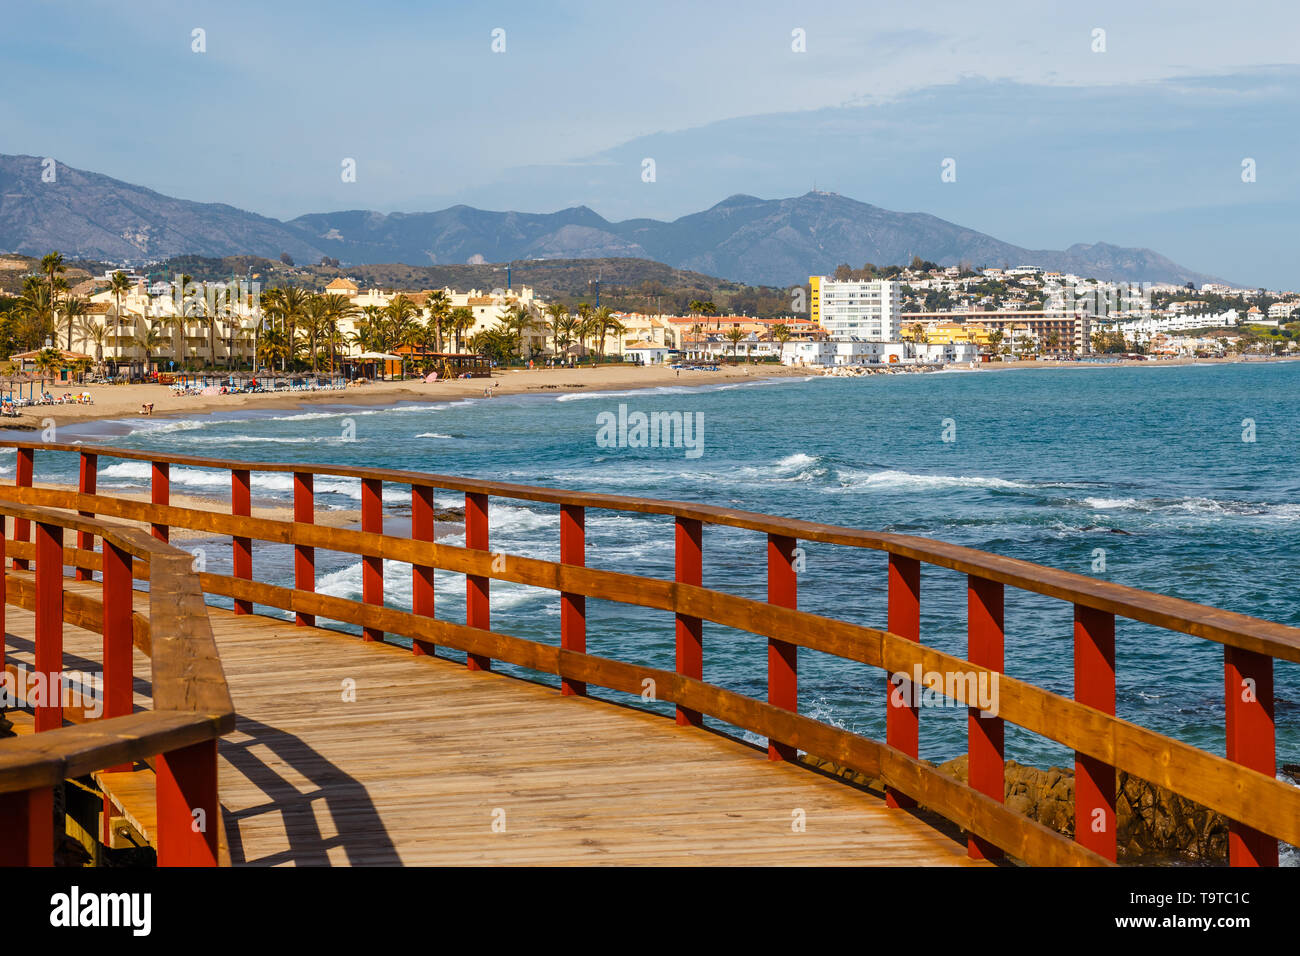 seaside promenade in La Cala De Mijas, Costa del Sol, Spain - Stock Image